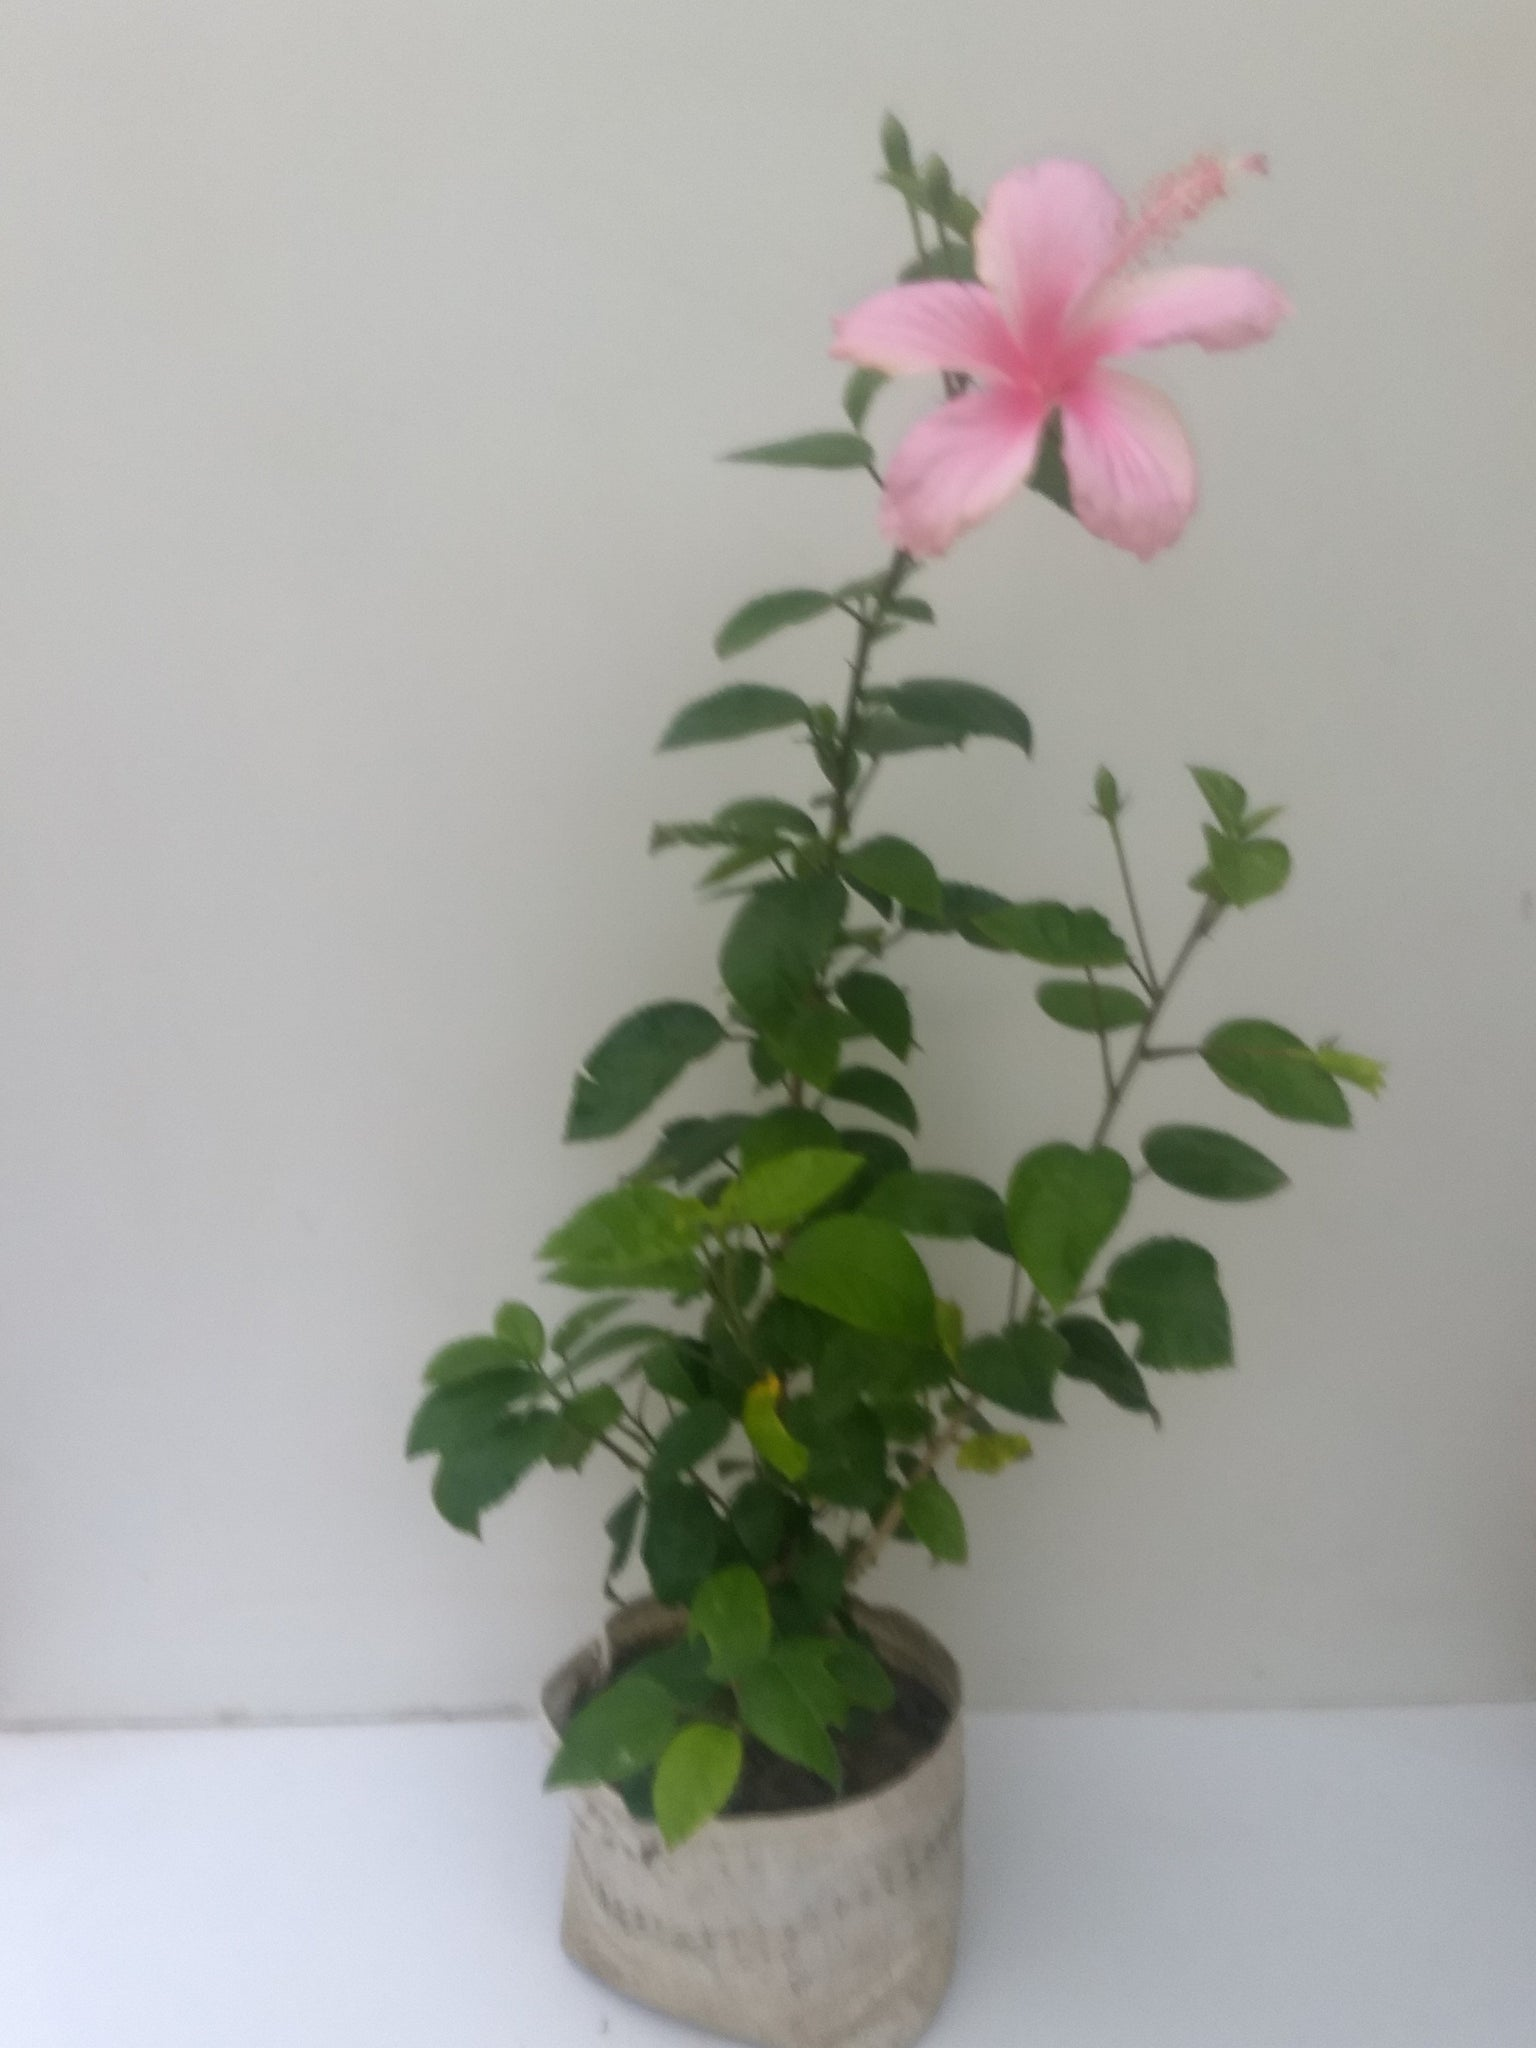 Hibiscus buy outdoor flowering plants online lawnkart hibiscus pink izmirmasajfo